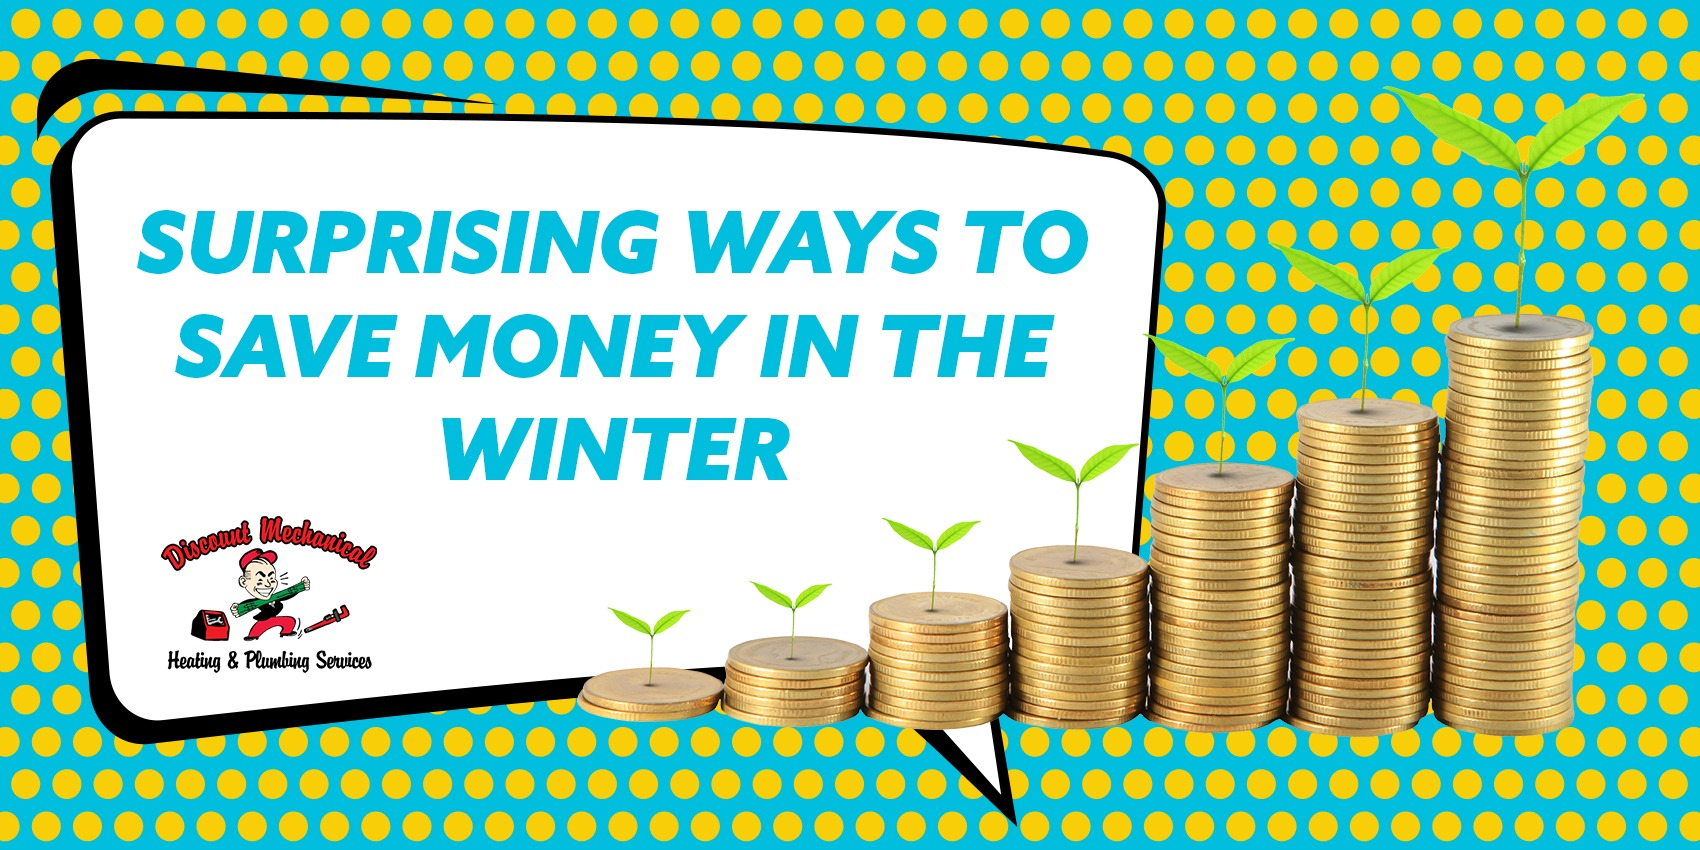 Surprising Ways to Save Money in the Winter